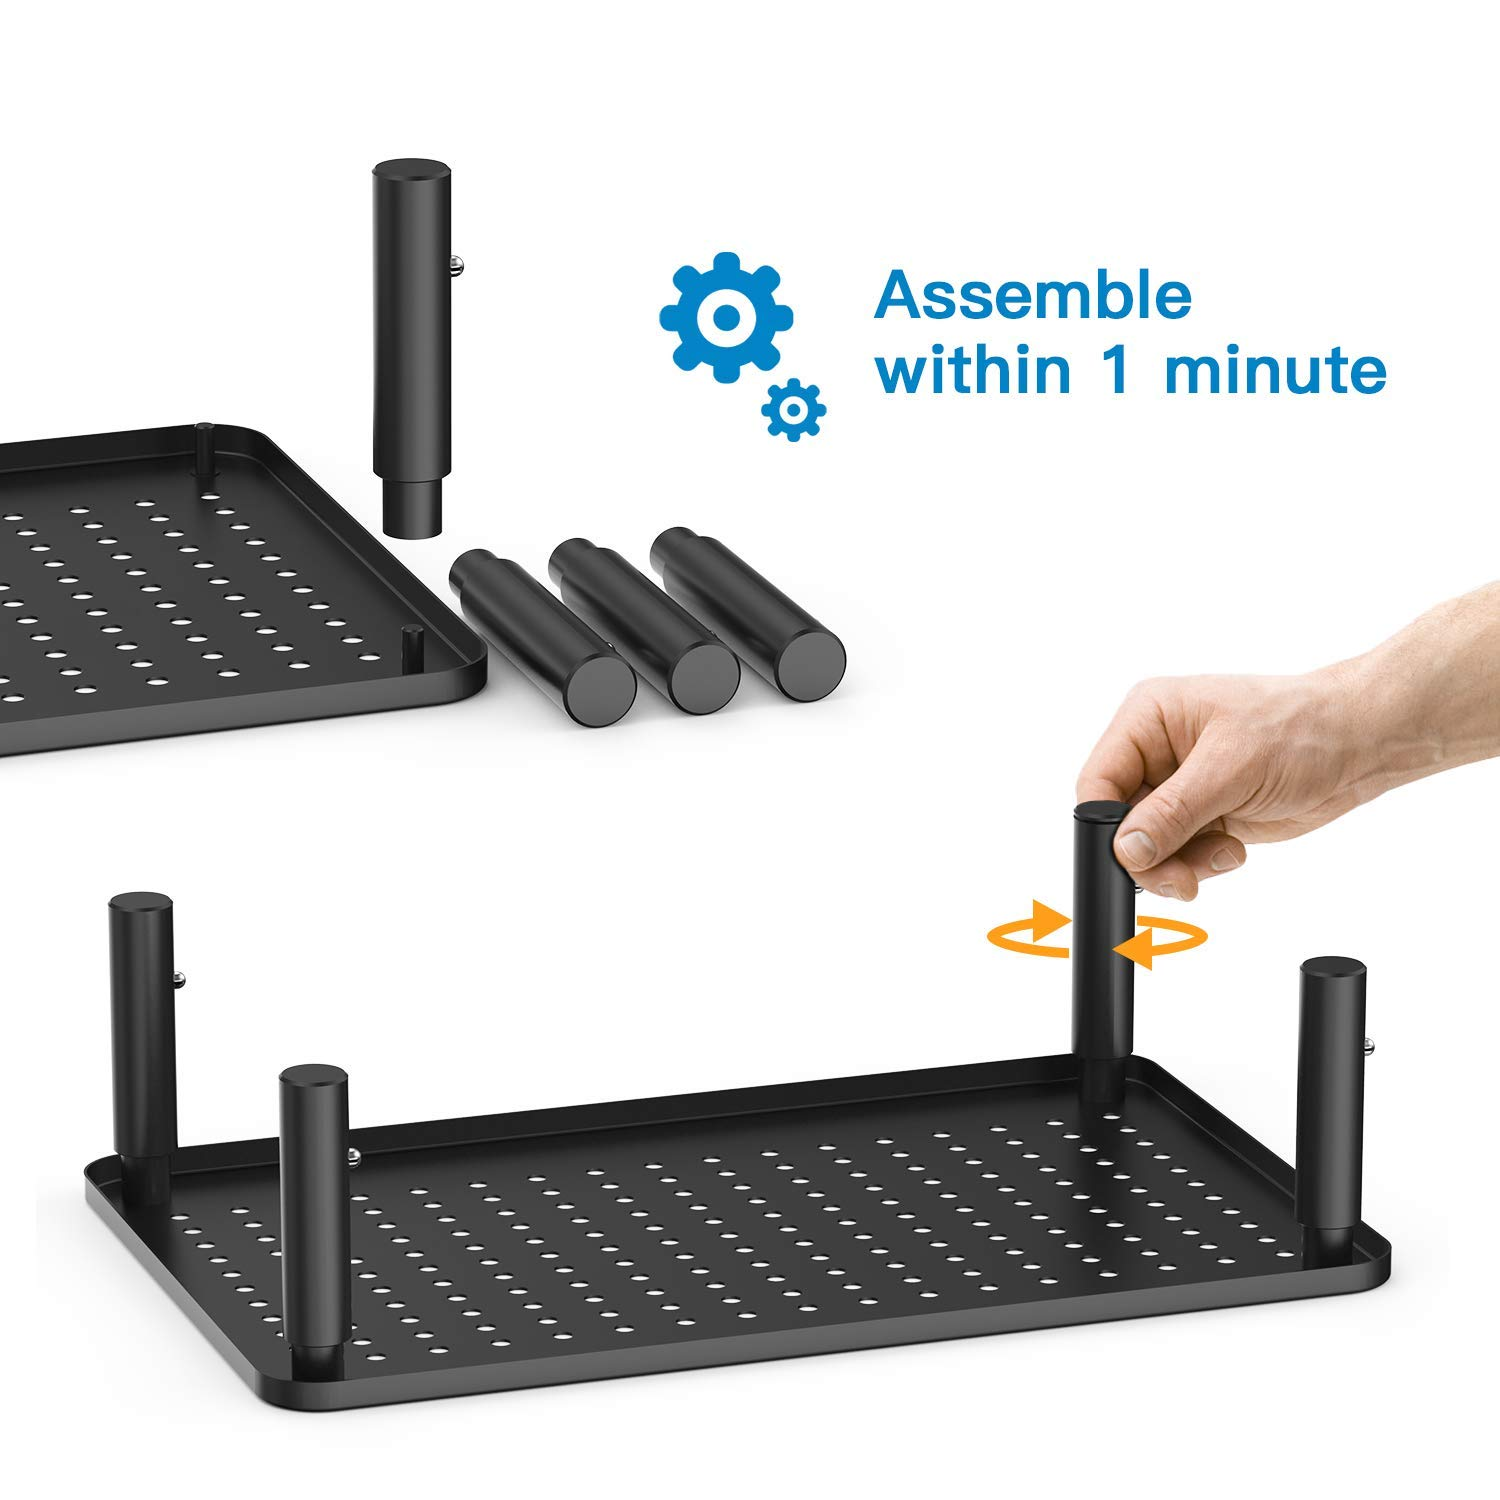 Monitor Stand Riser - 3 Height Adjustable Monitor Stand for Laptop, Computer, iMac, PC, Printer, Desktop Ergonomic Metal Monitor Riser Stand with Mesh Platform for Airflow by HUANUO (2 Pack) by HUANUO (Image #3)